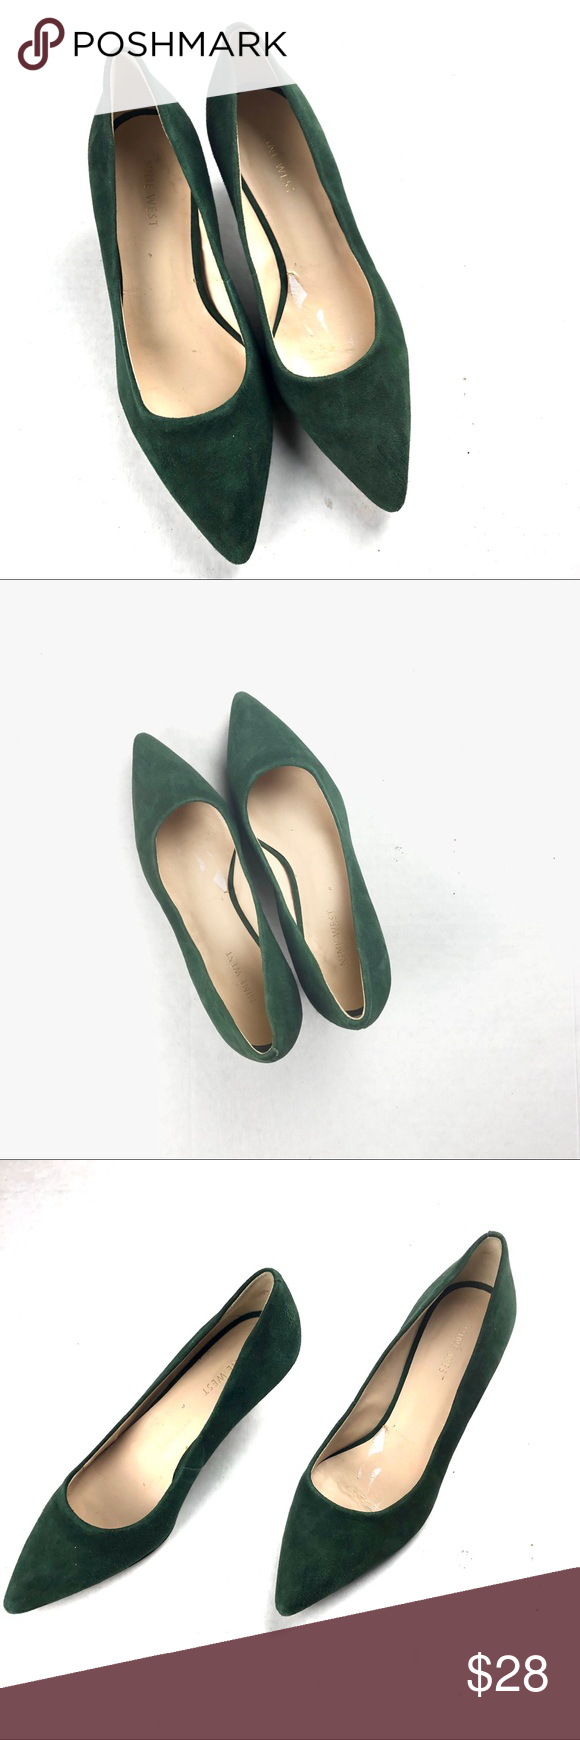 Nine West Nwillumie Green Suede Shoes Kitten Heel Shoes Suede Shoes